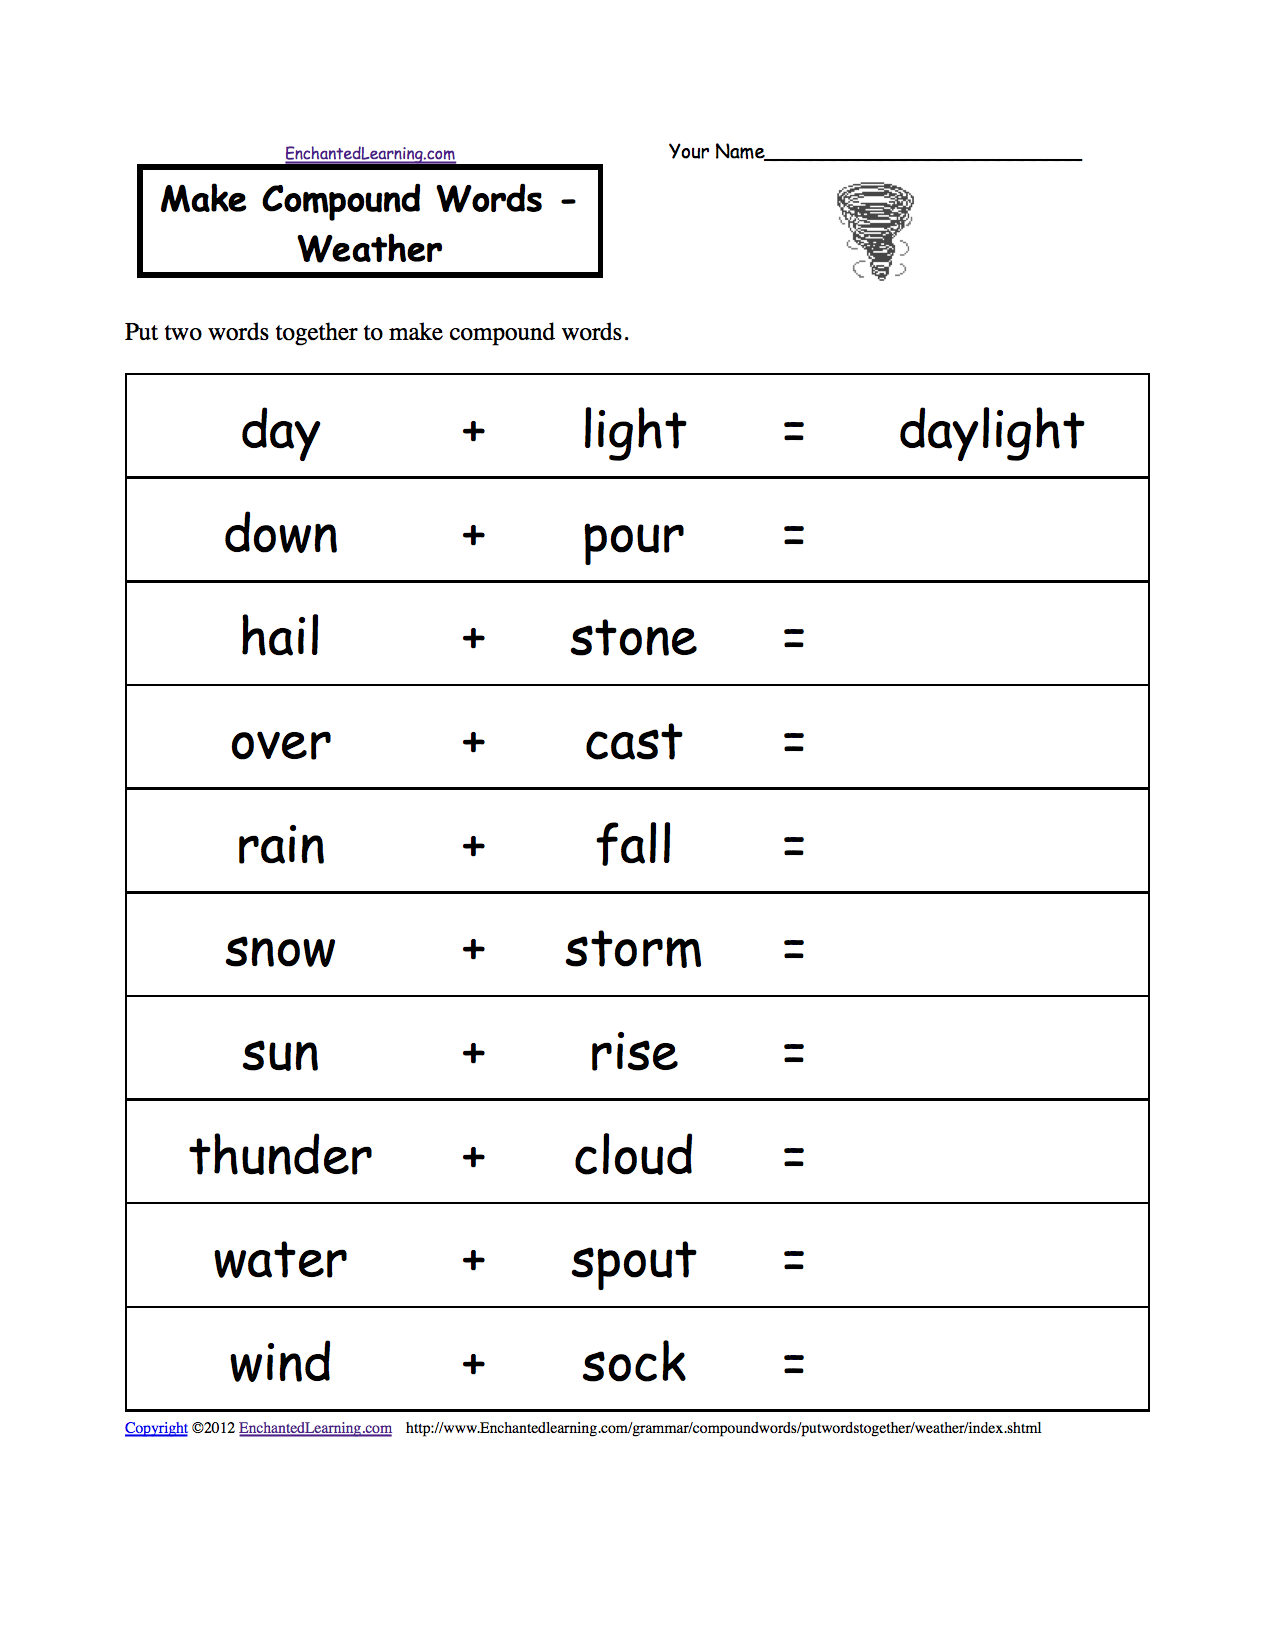 Free Worksheet First Grade Rhyming Worksheets weather related activities at enchantedlearning com make compound words printable worksheet